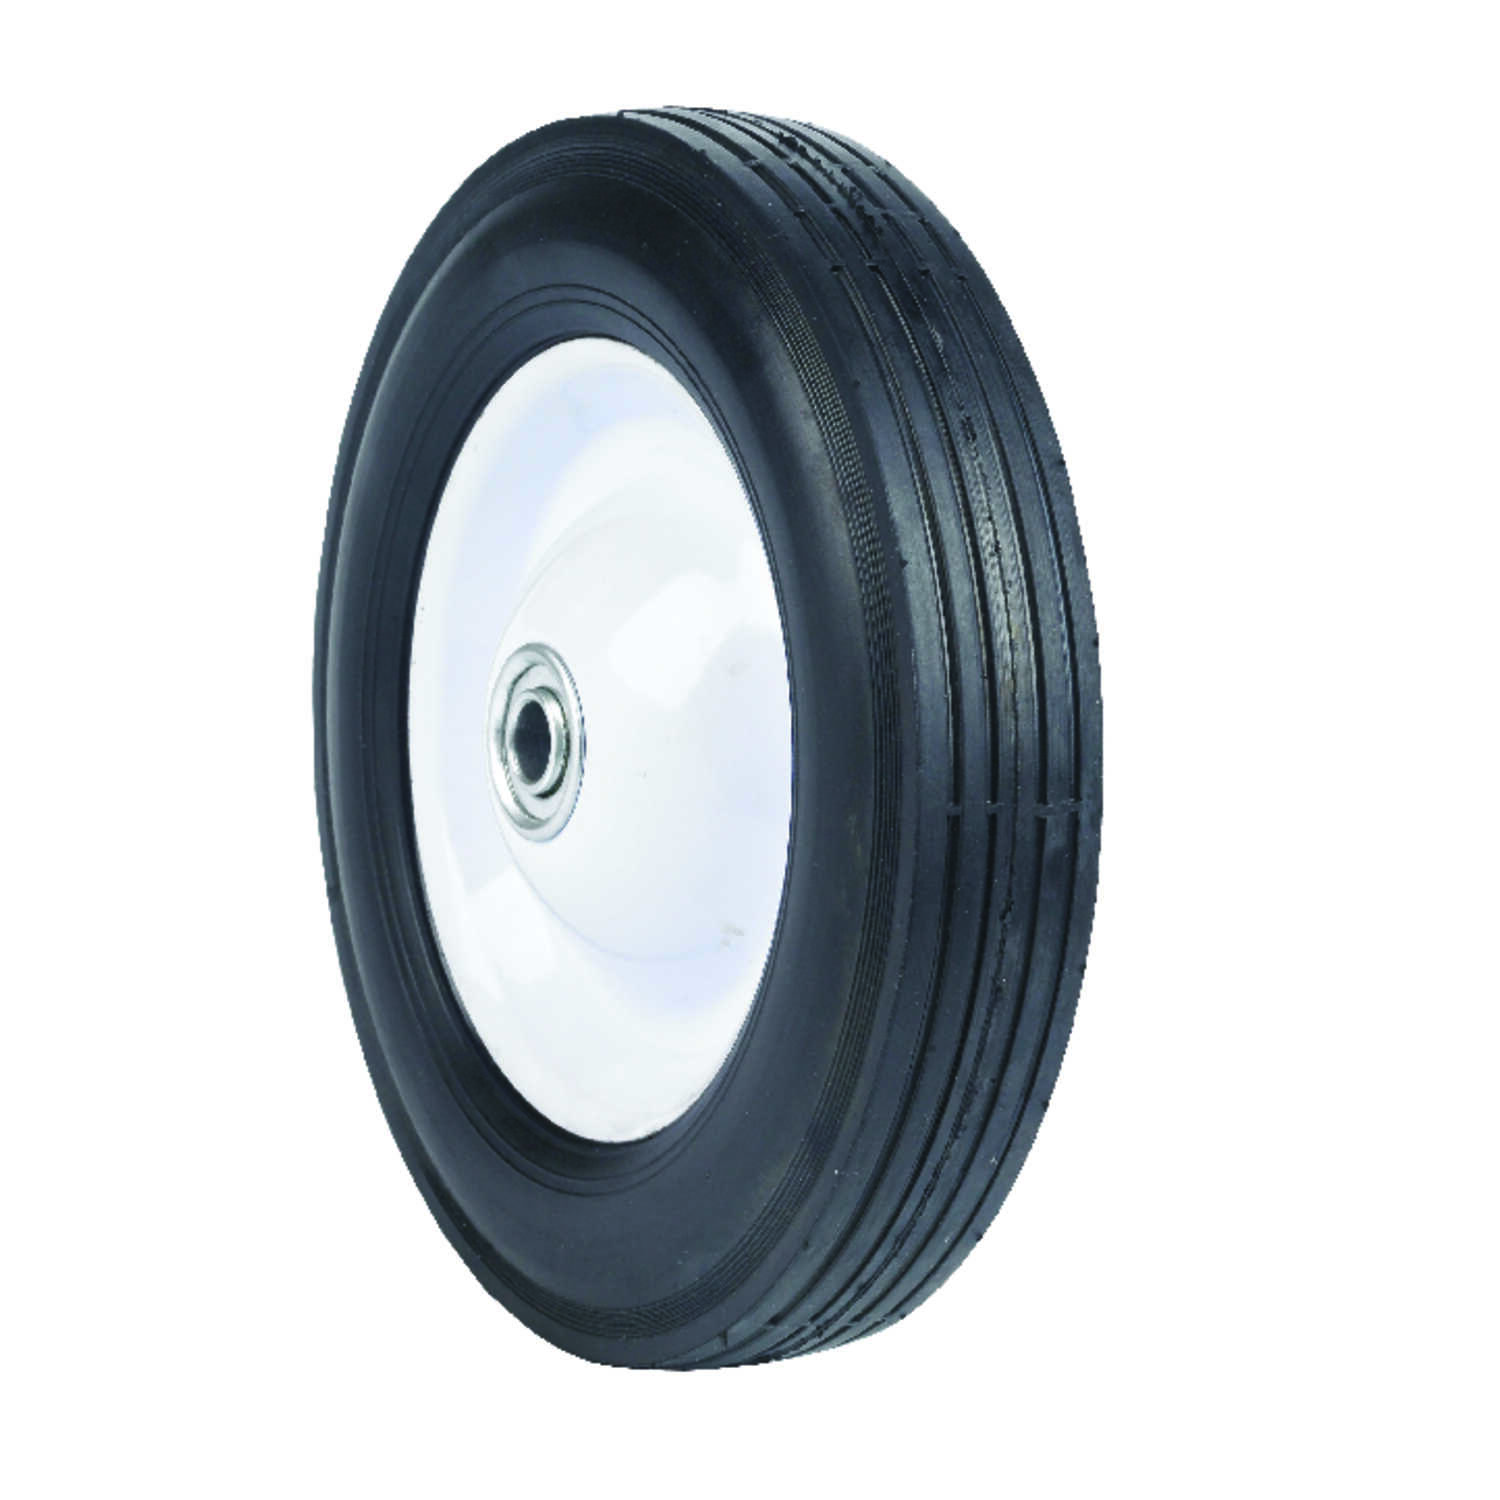 Arnold  8 in. Dia. x 1.75 in. W Lawn Mower Replacement Wheel  60 lb. Steel